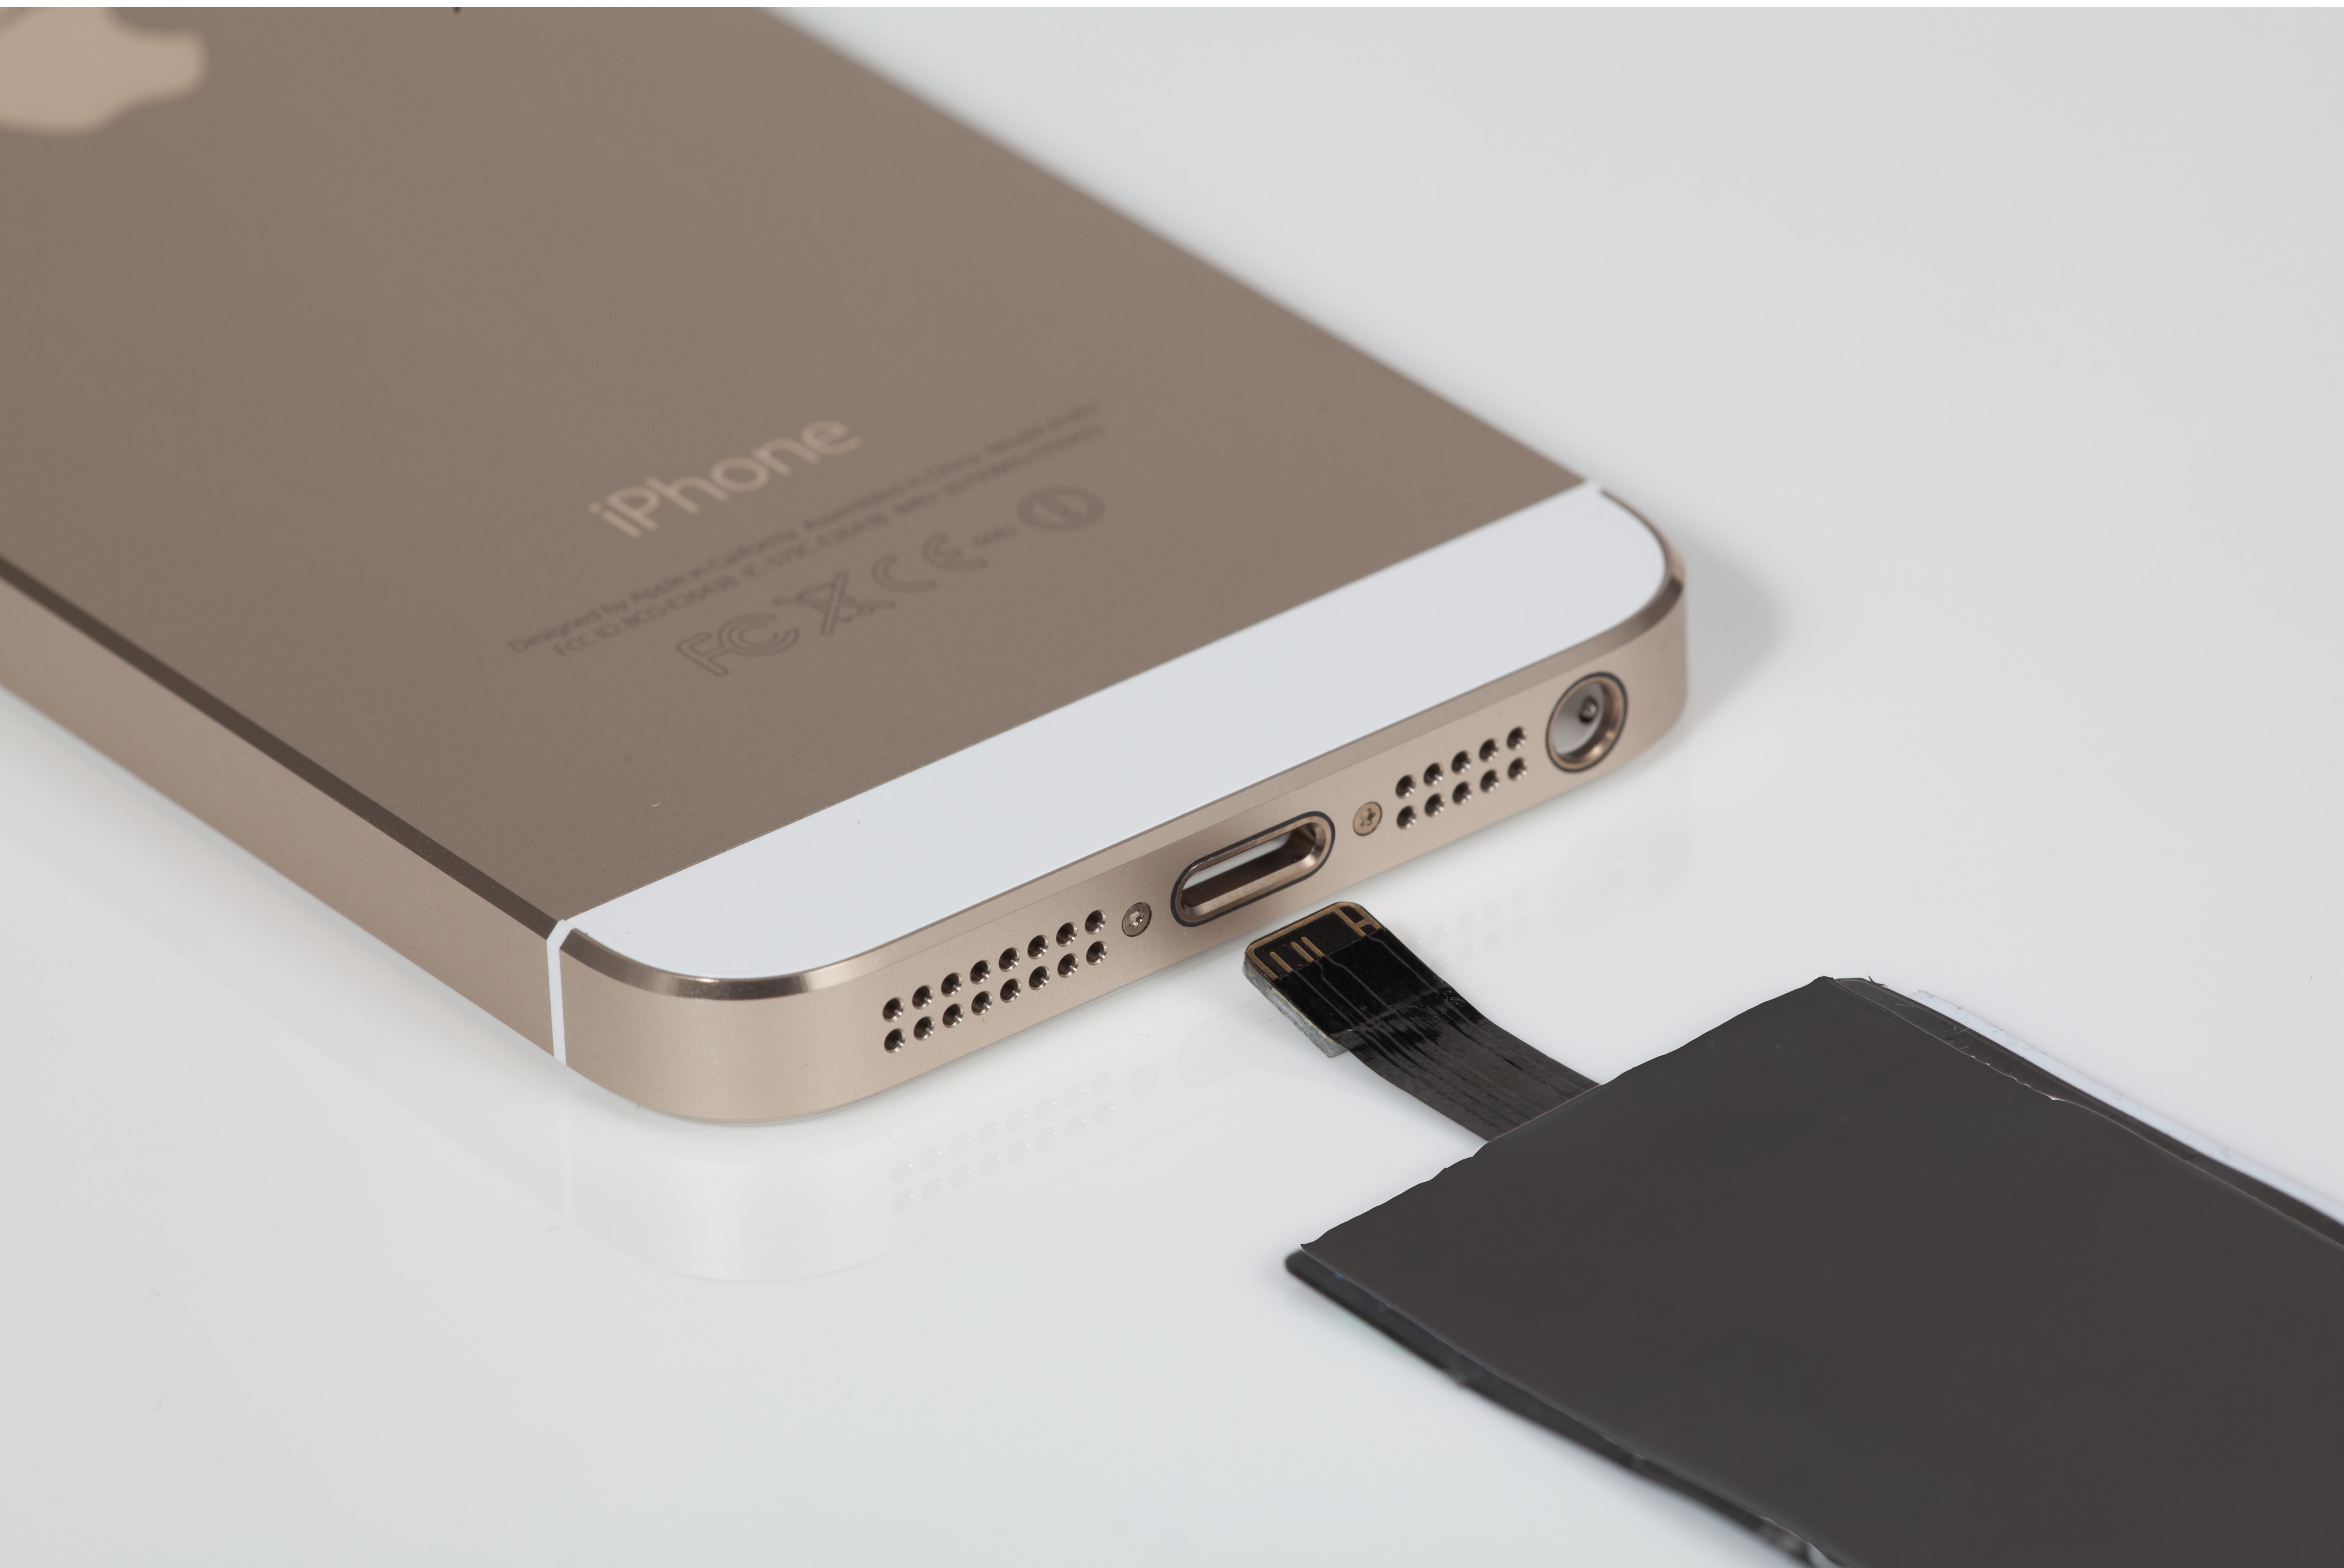 ... is a seemless way to wirelessly charge your iPhone 5s, 5C u0026 5